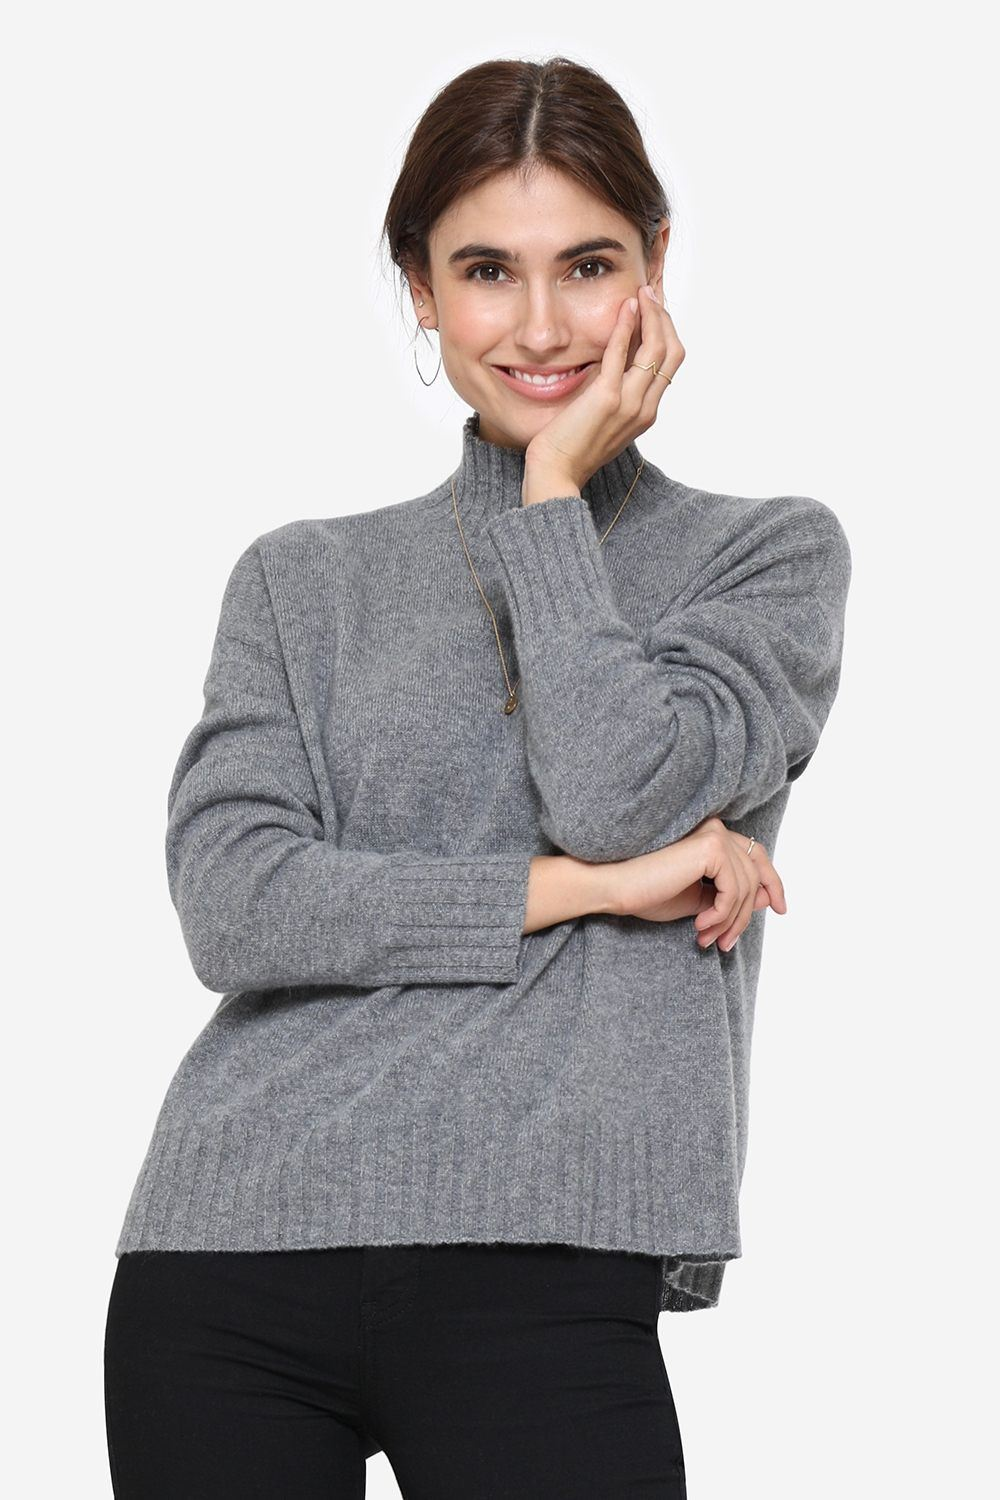 Soft casmere sweater in grey melange with small collar, front view